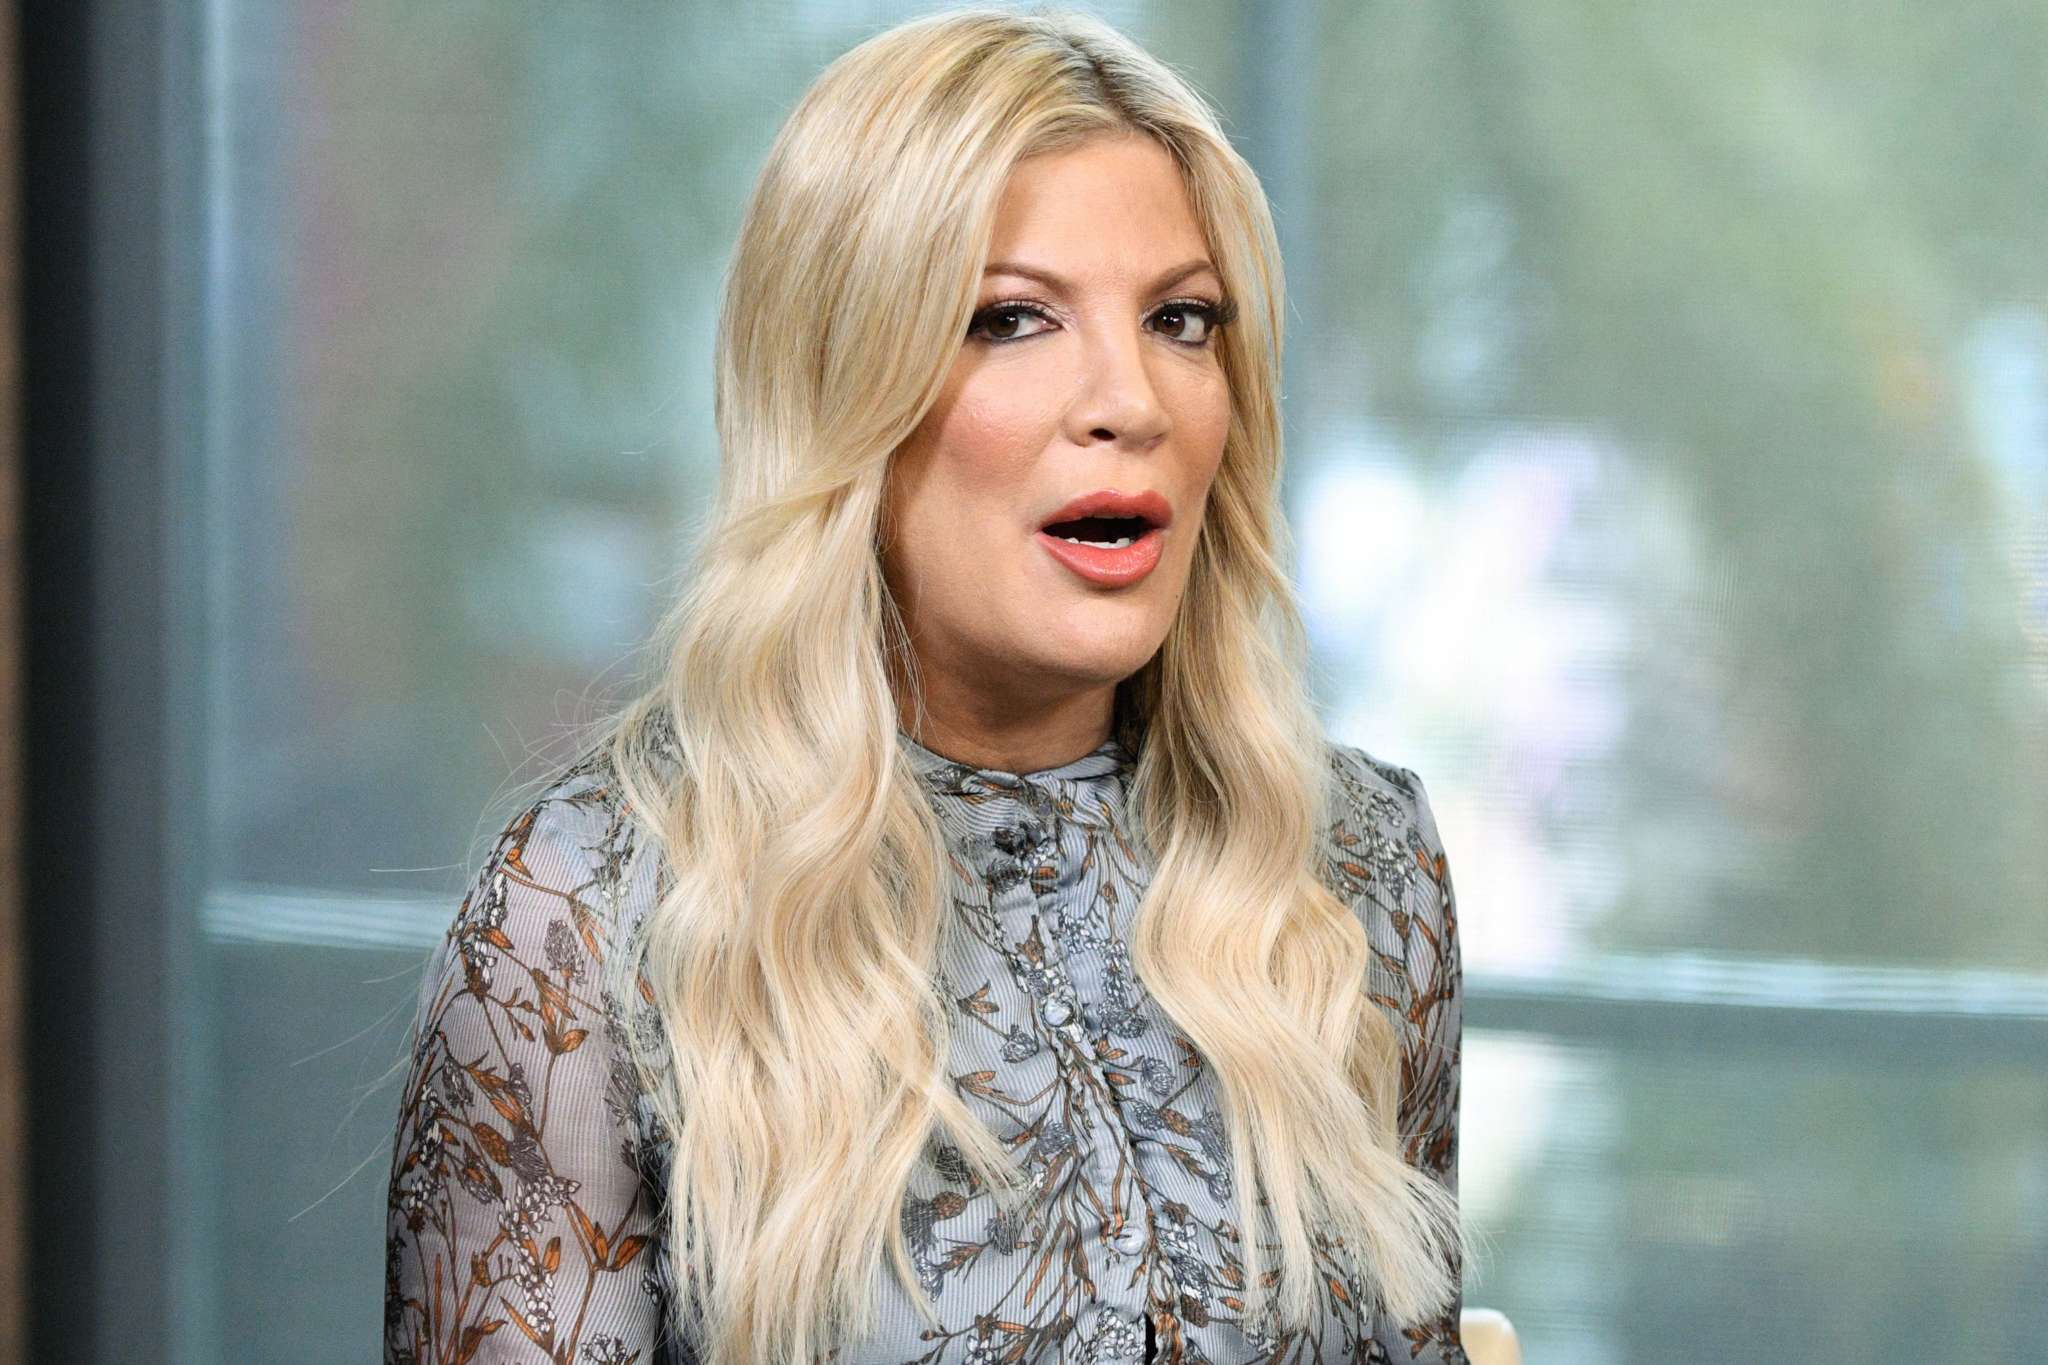 Tori Spelling Just Got Dragged By Fans And Her Daughter Is Part Of The Cause - See The Photo That Unleashed Hell